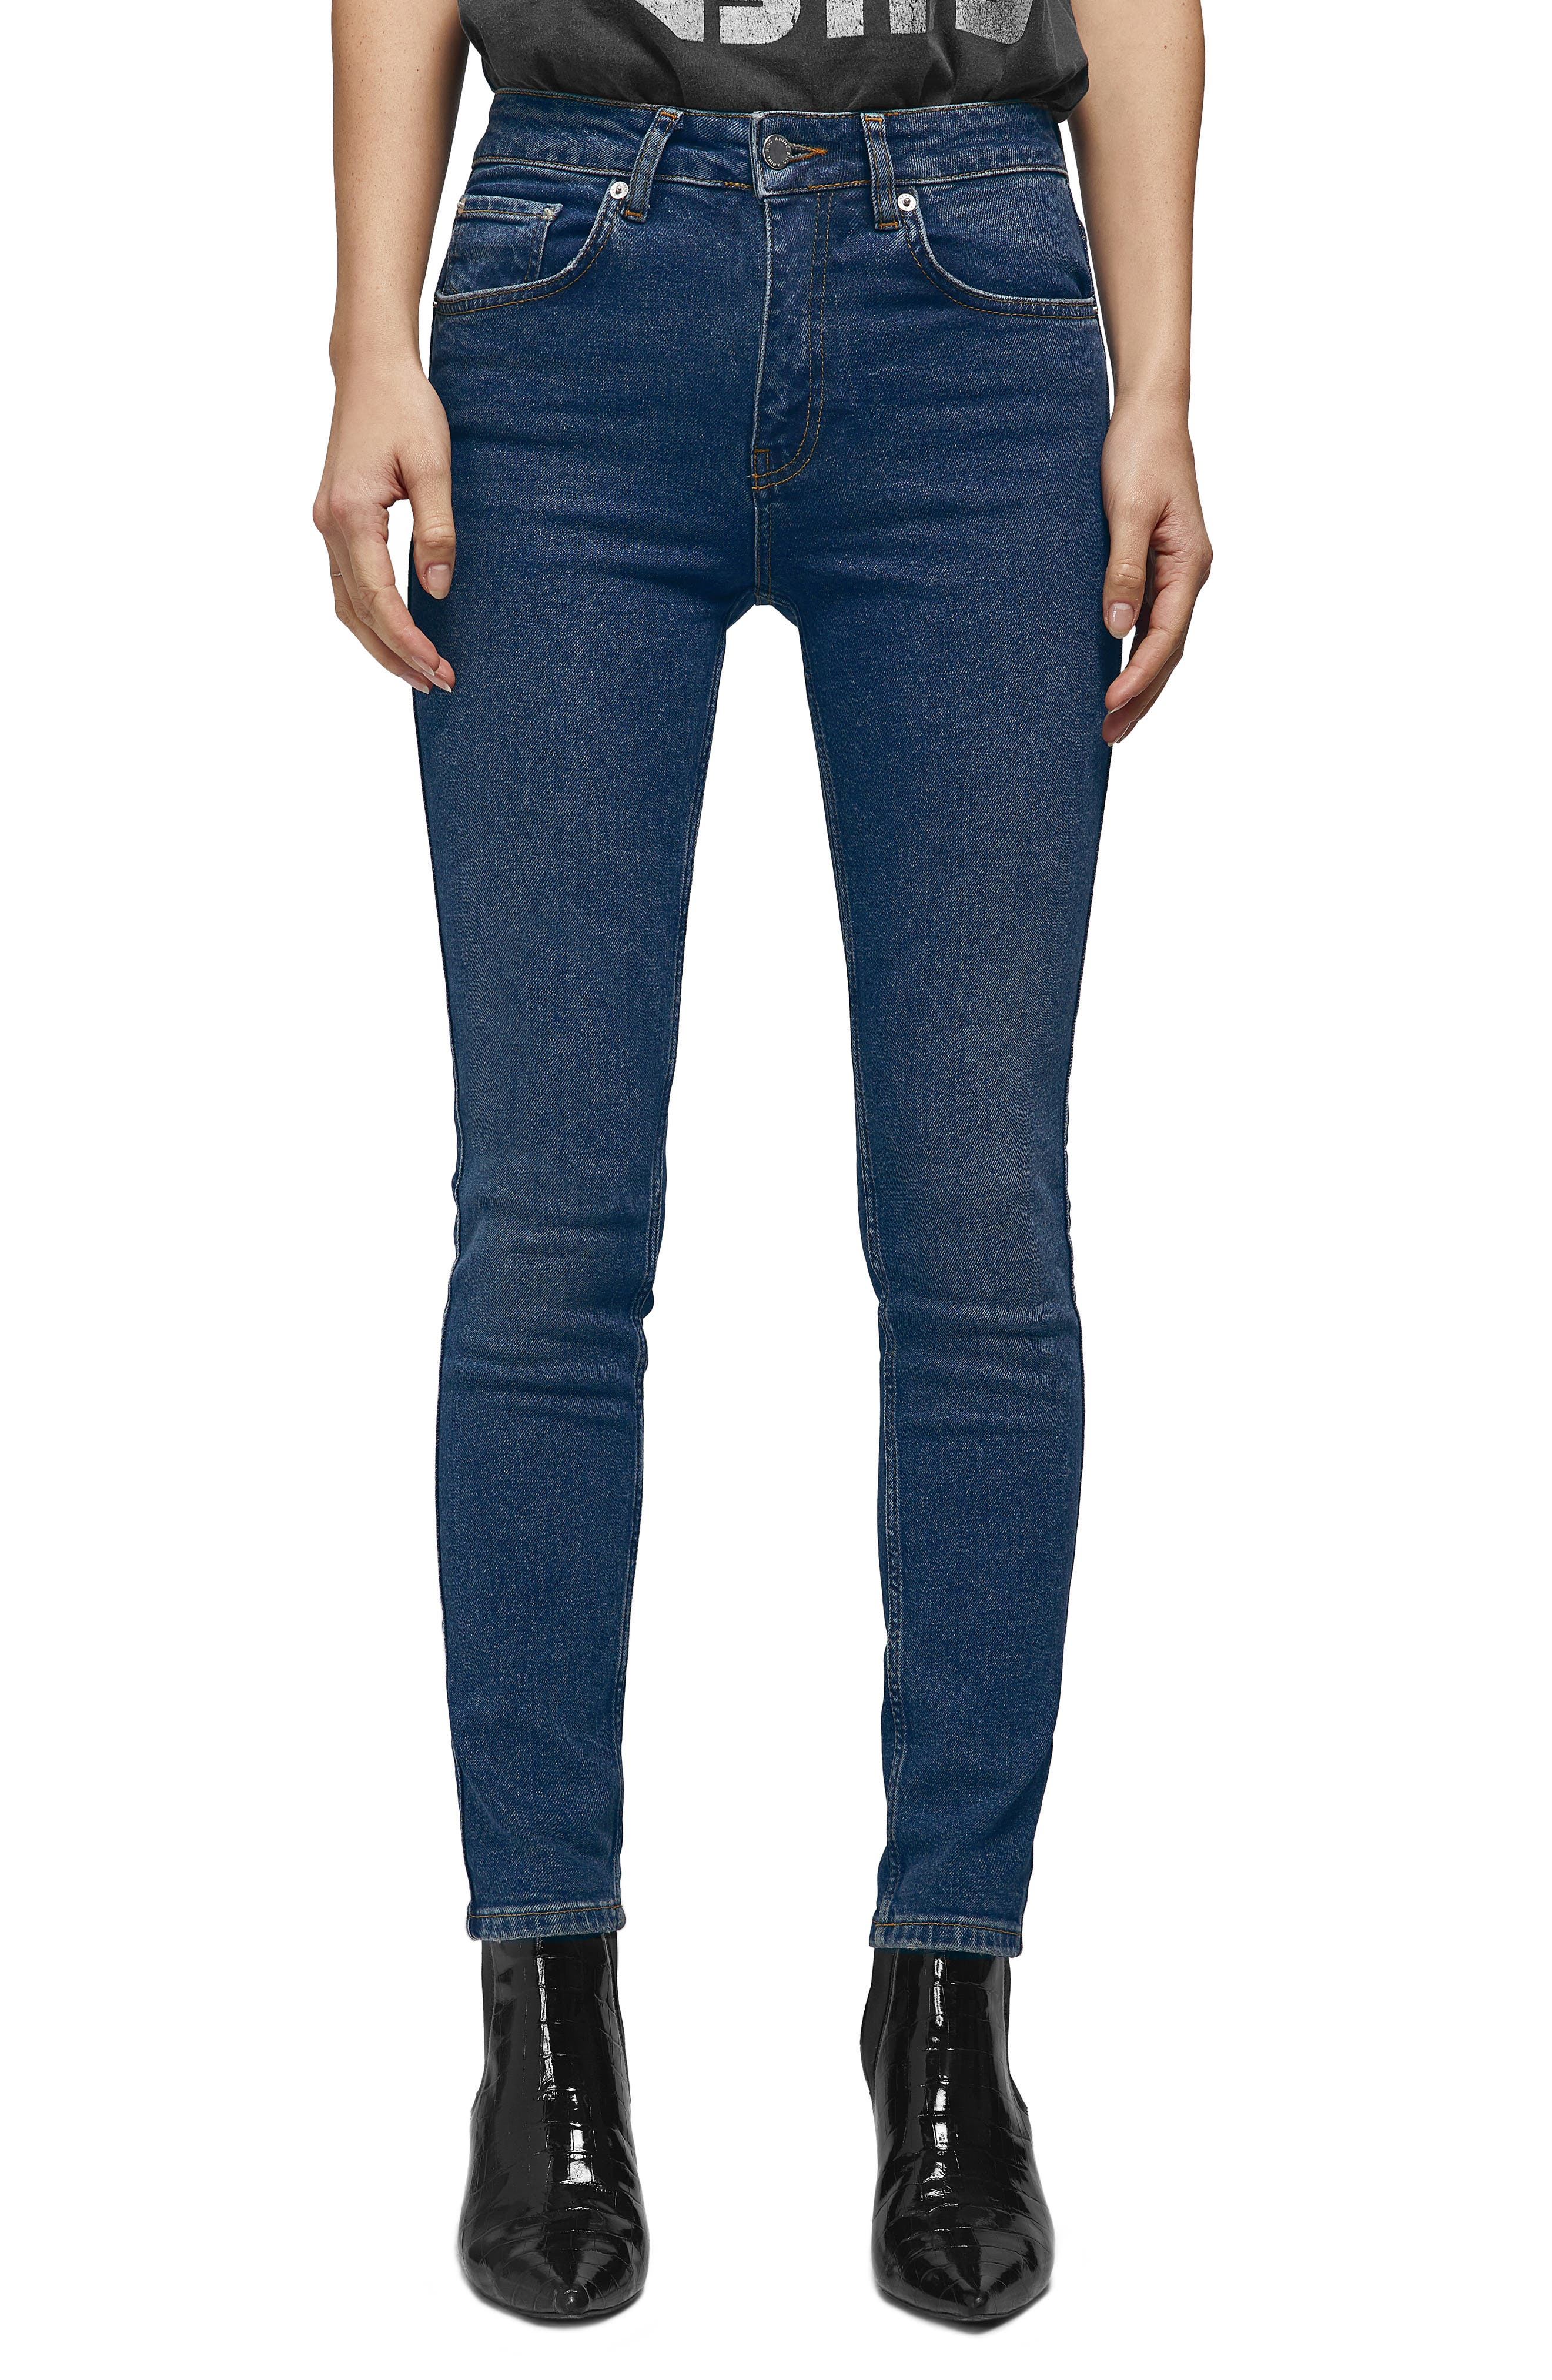 ANINE BING,                             High Waist Skinny Jeans,                             Main thumbnail 1, color,                             NAVY